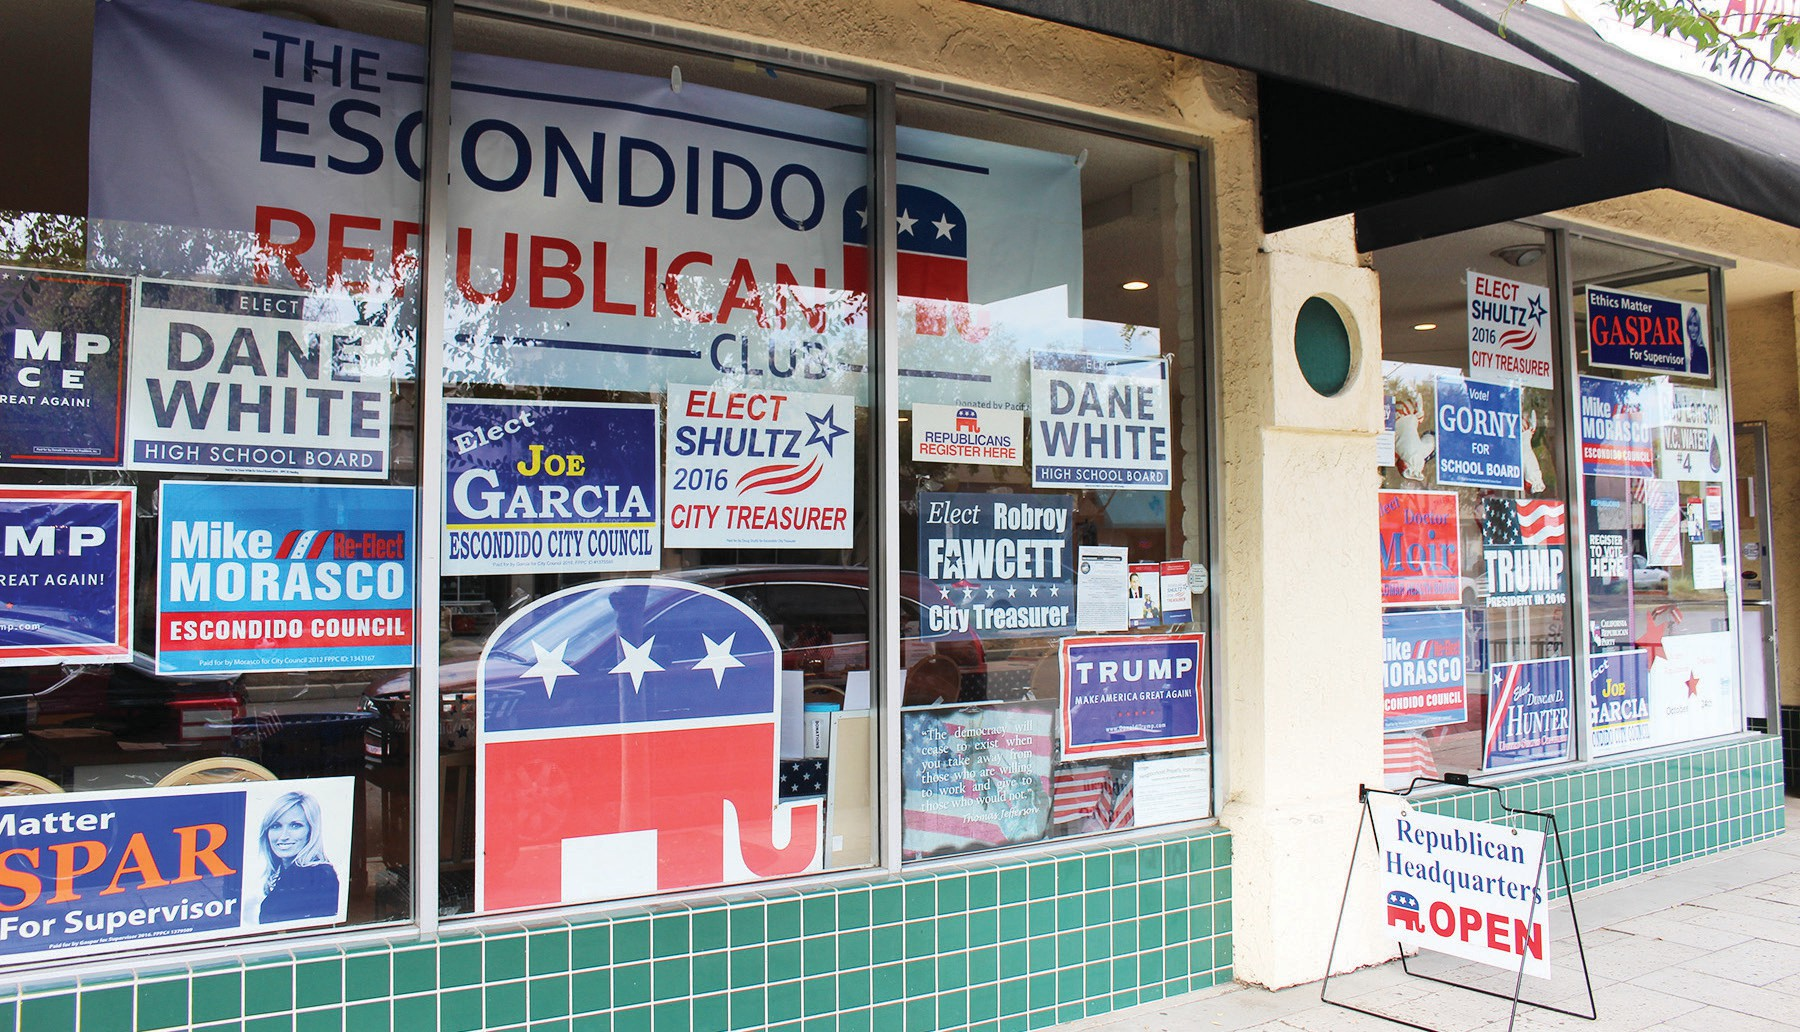 The storefront office of the Escondido Republican Party on 142 Grand Ave. (next door to Swami's restaurant.) The storefront window is festooned with various state and local candidate placards.